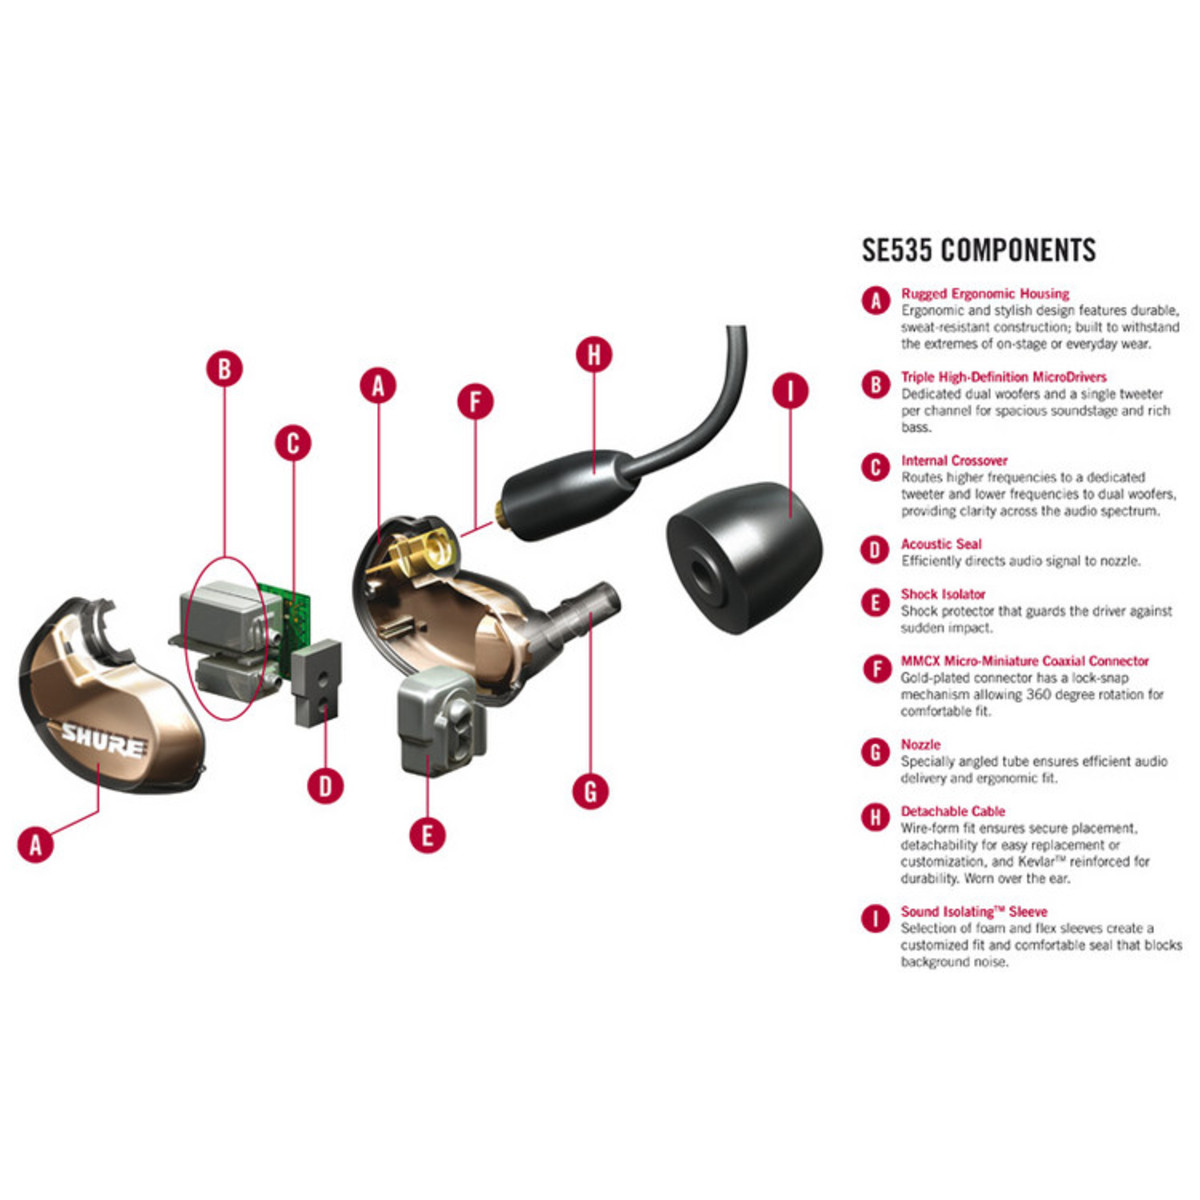 Shure Se535 Sound Isolating Earphones Clear At Gear4music Isolation Audio Headphones Having On Volume Control Wiring